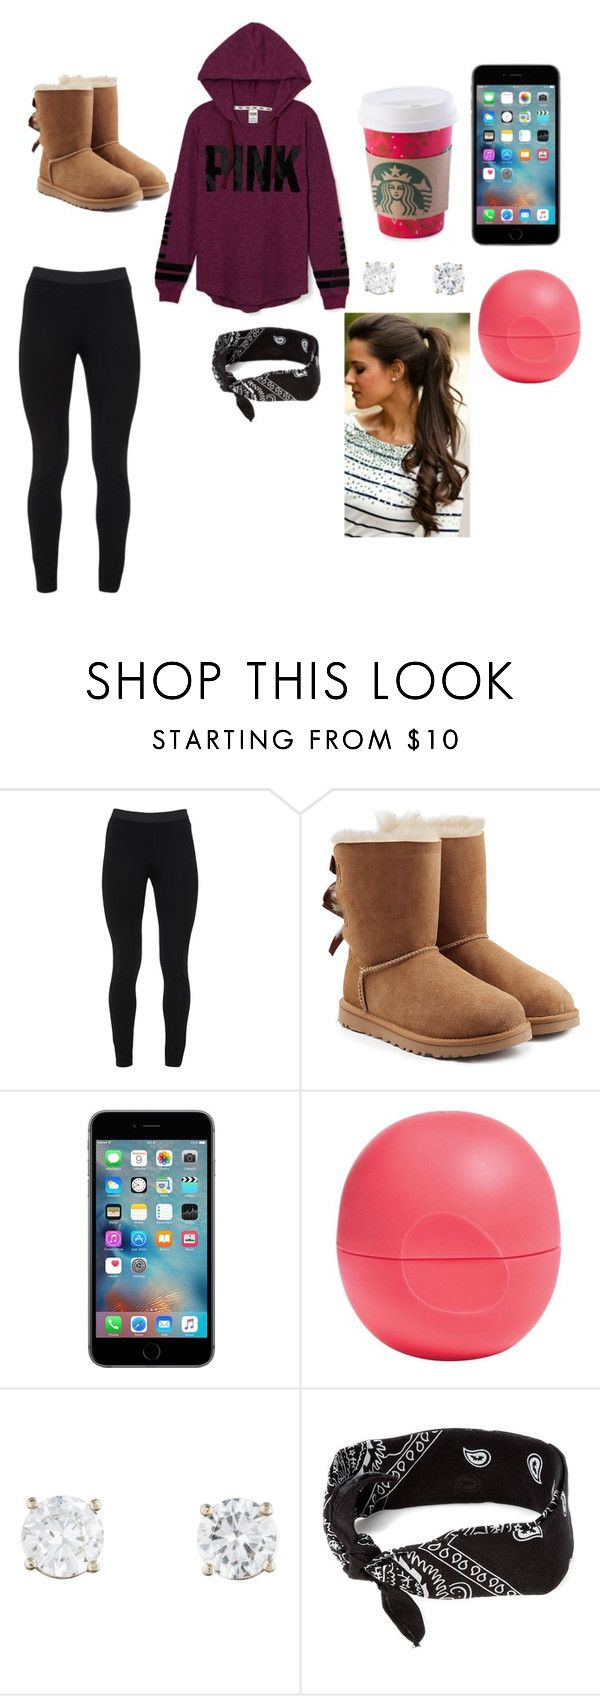 """Going Out Bowling Outfit"" by edec1152 ❤ liked on Polyvore featuring Victoria's Secret, Peace of Cloth, UGG Australia, Eos and claire's"